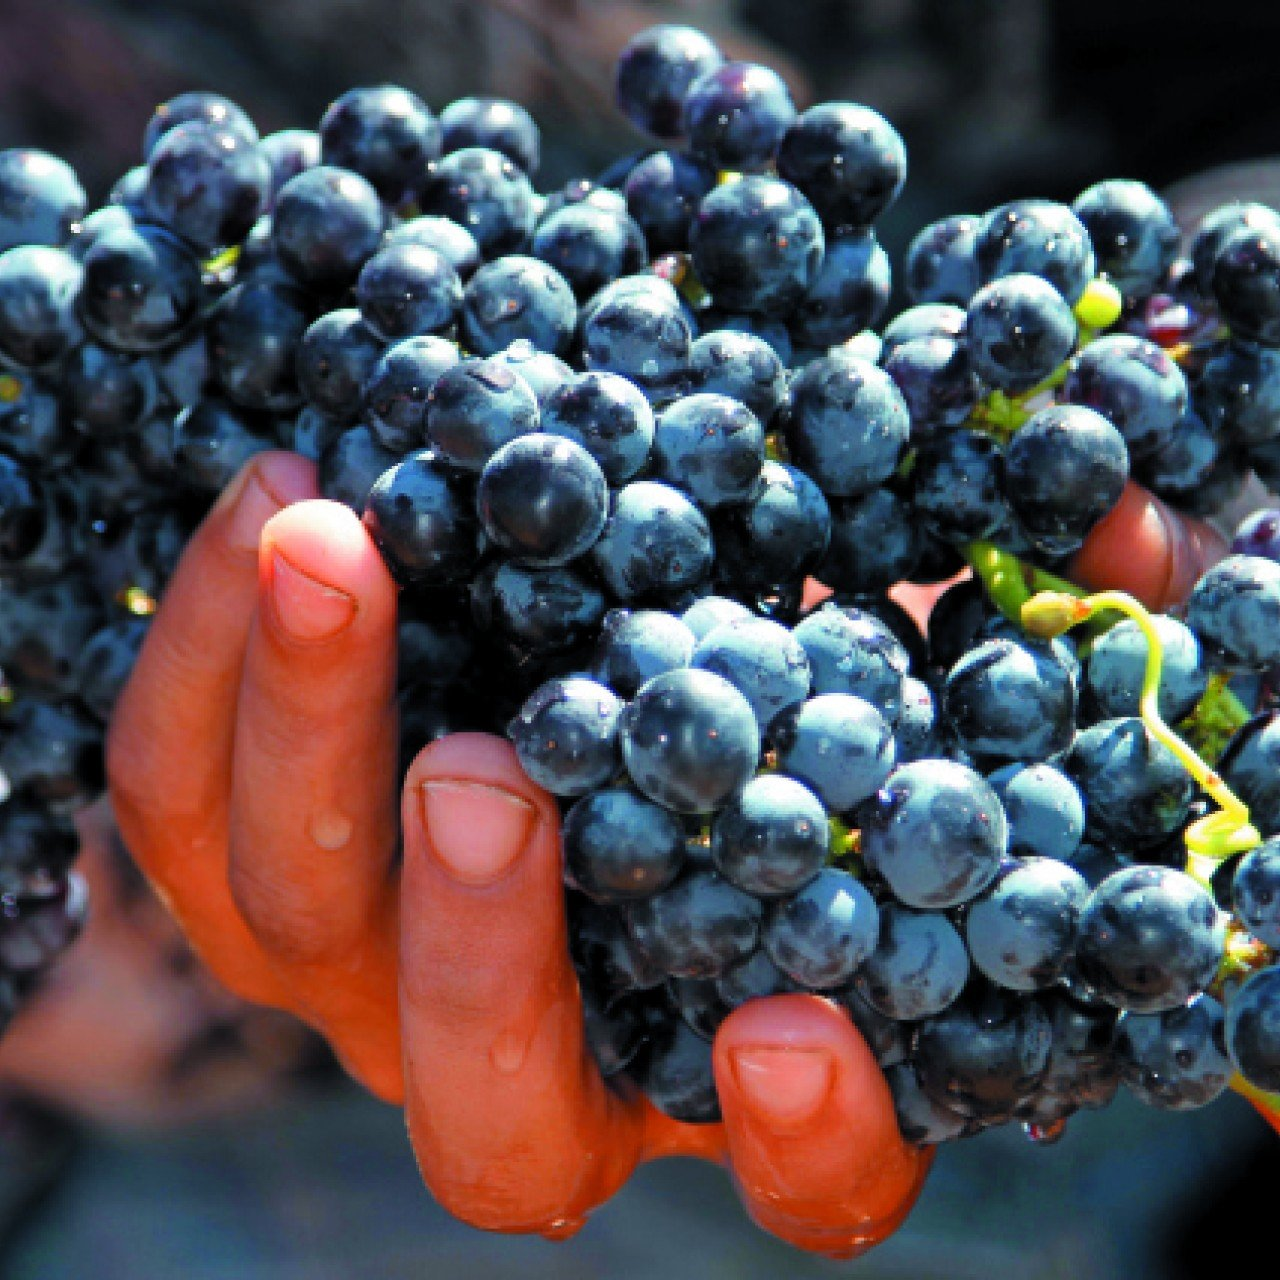 Winemaking in the Middle East enjoys a long history, but the